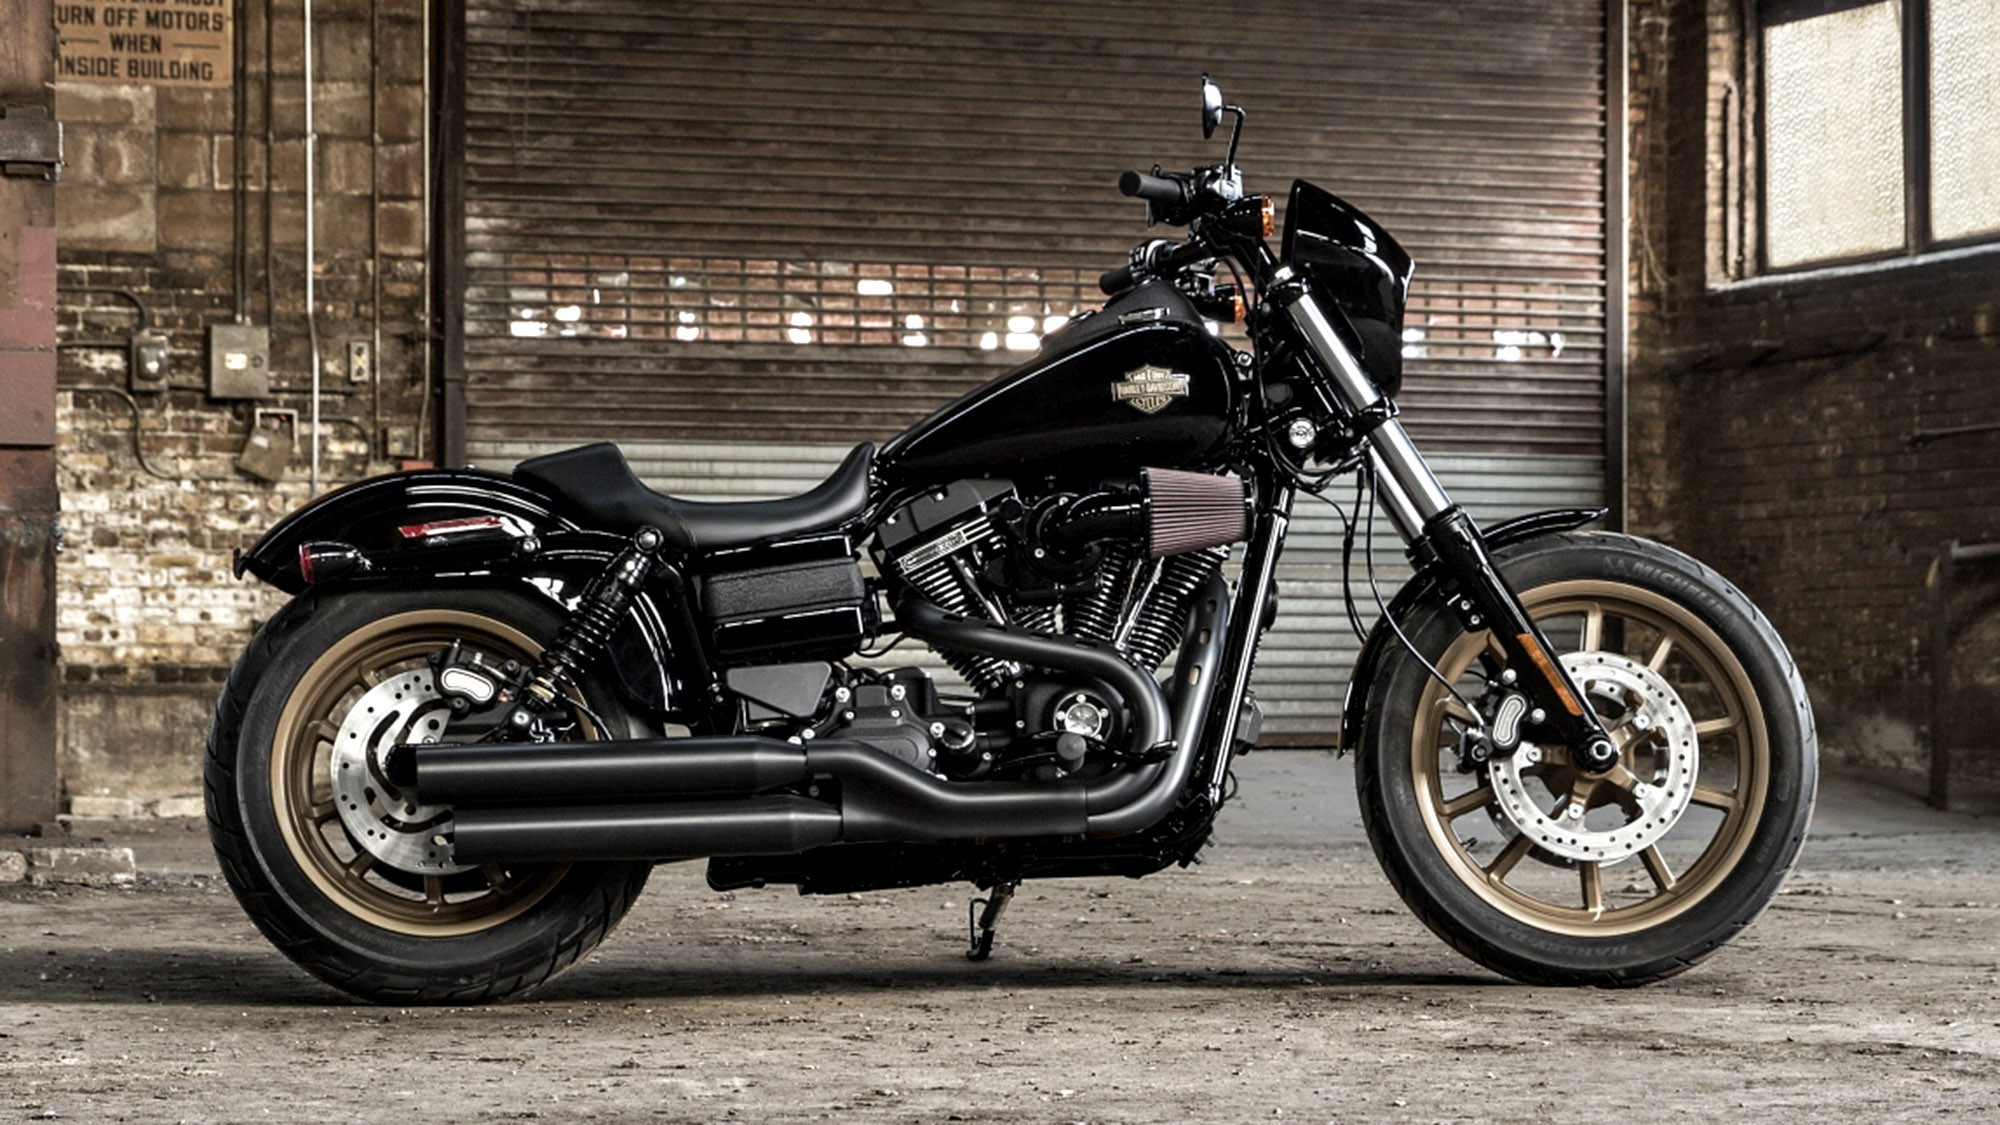 Harley-Davidson adds two new models to 2016 line - LA Times